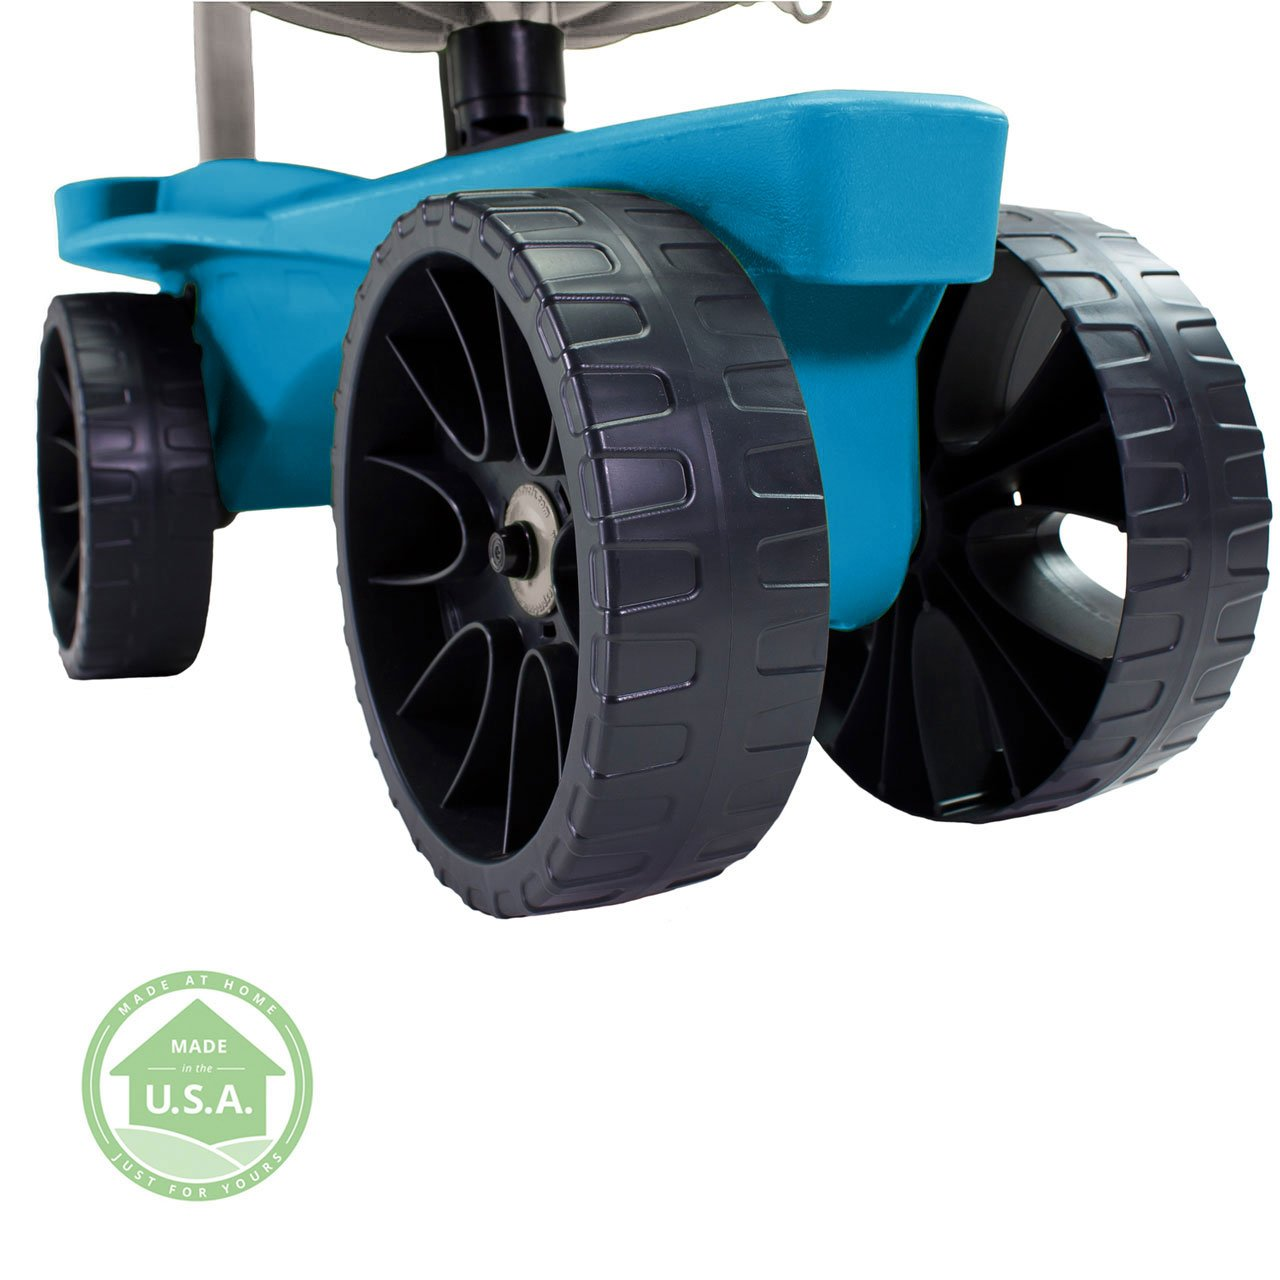 Easy Up Deluxe XTV Rolling Garden Seat and Scoot - Adjustable Swivel Seat, Heavy Duty Wheels, and Ergonomic Design To Assist Standing, Sitting, and Bending Over Made in the USA (Deluxe XTV Teal) by Vertex (Image #5)